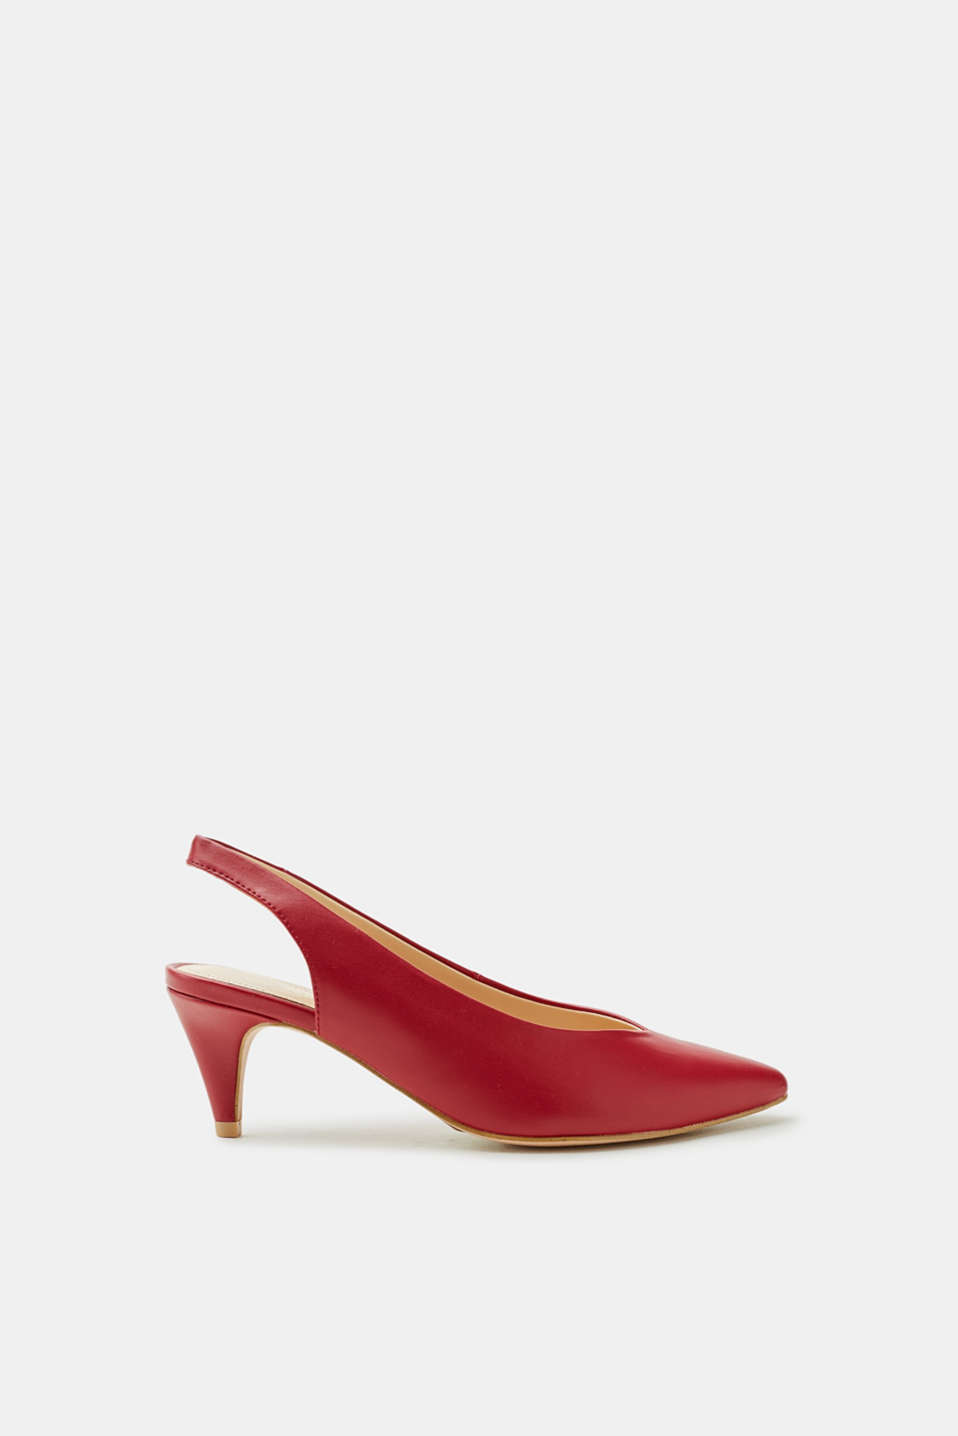 Esprit - Slingback-Pumps in glatter Leder-Optik